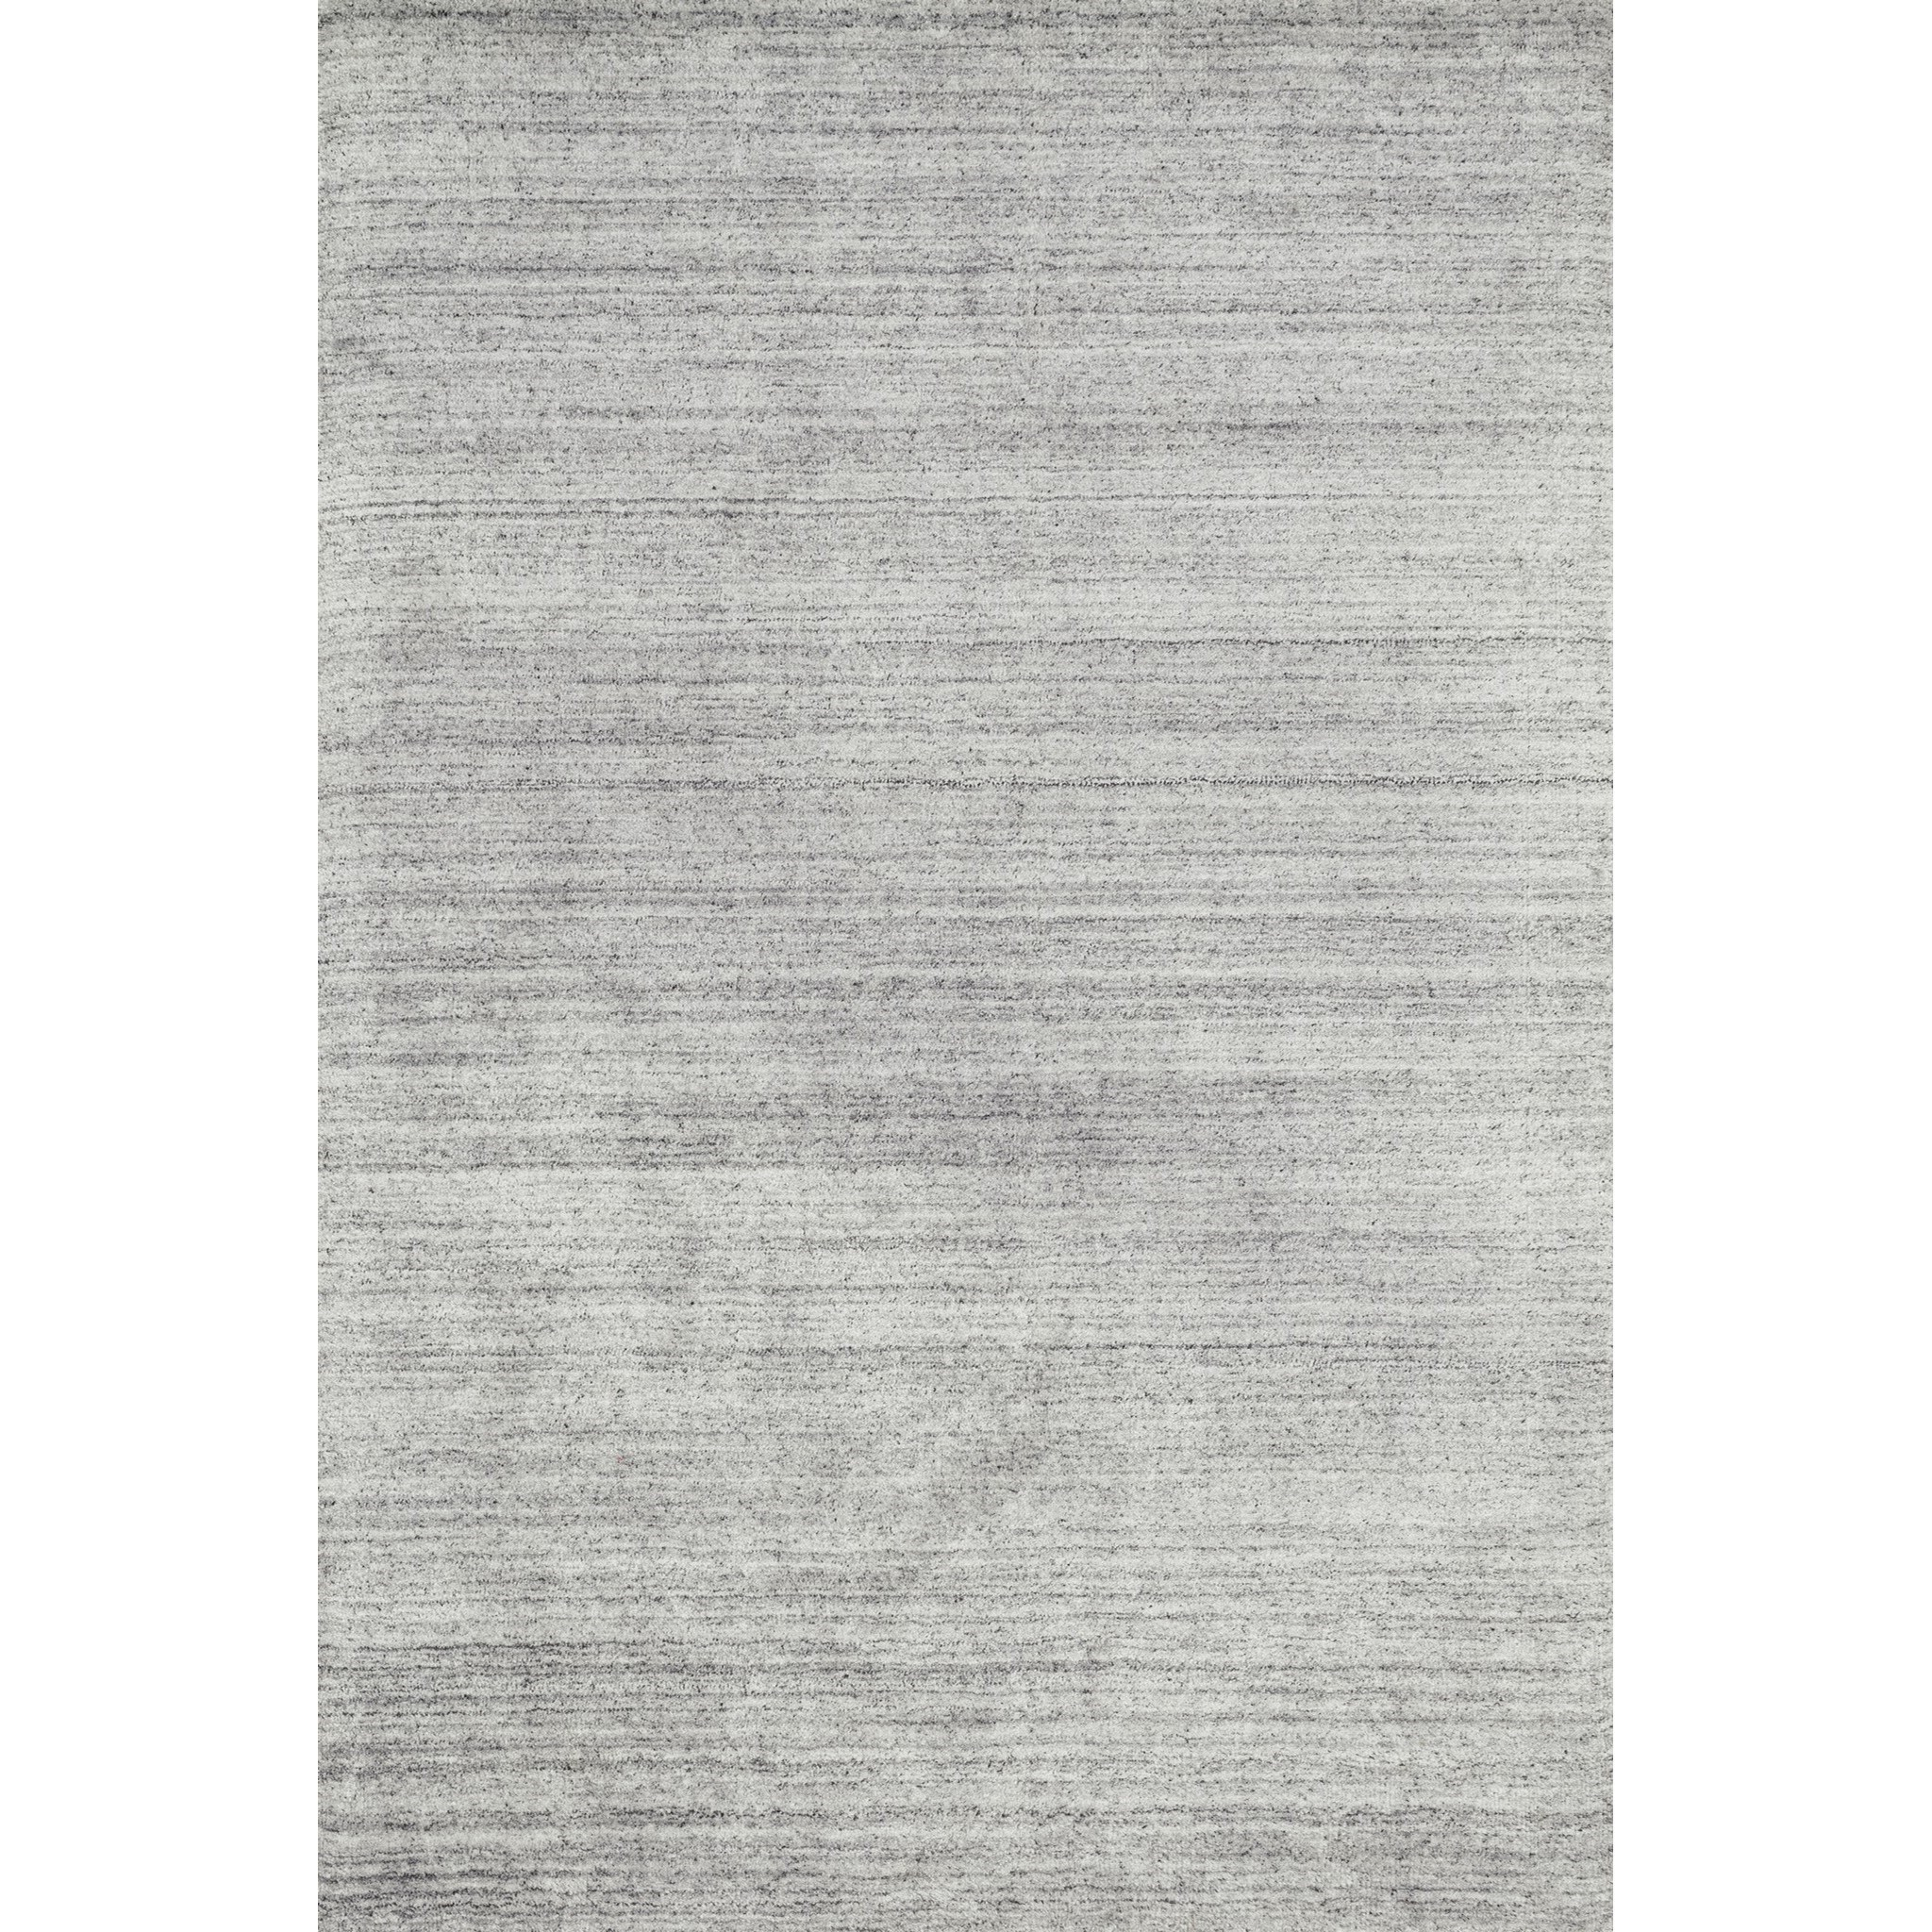 "Barkley 7'-6"" x 9'-6"" Area Rug by Loloi Rugs at Virginia Furniture Market"